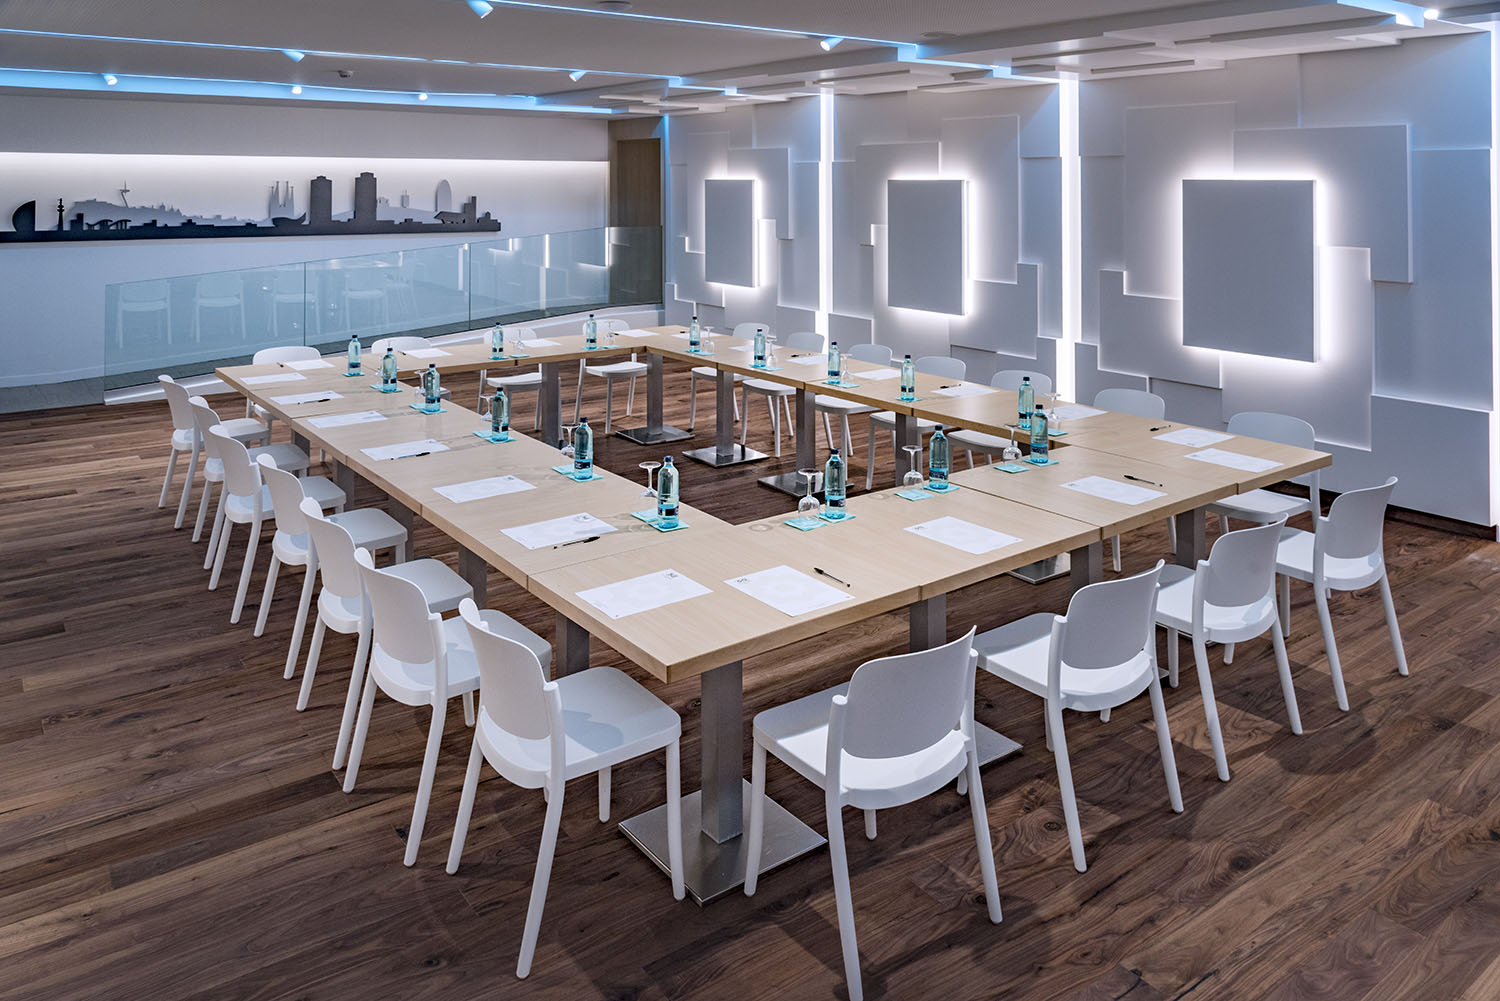 MEETING ROOM COWORKING BARCELONA HOTEL POR ROSA COLET